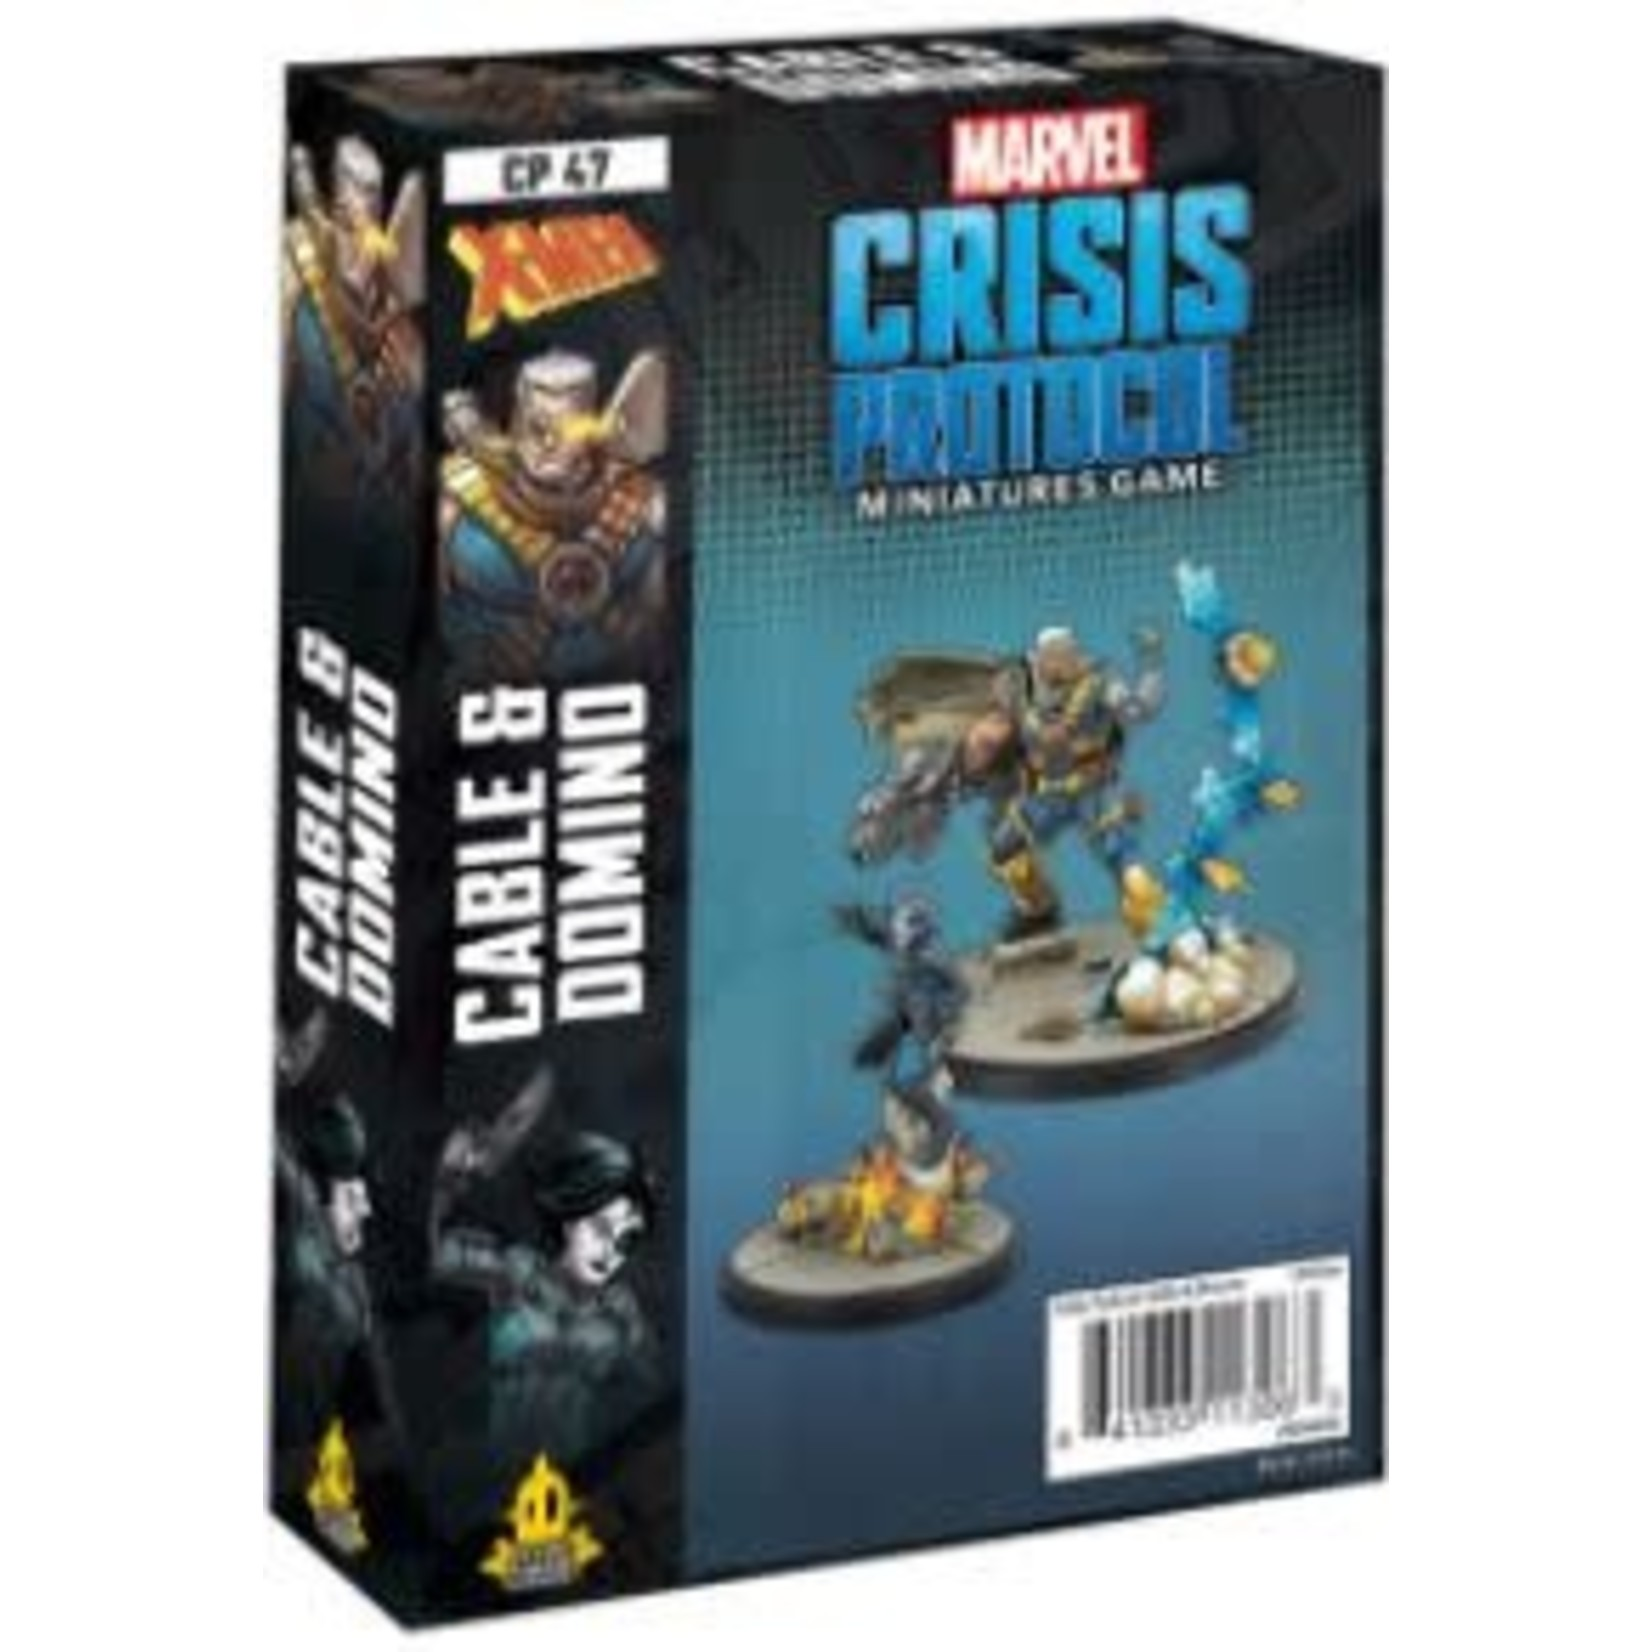 Atomic Mass Game Marvel Crisis Protocol - Domino & Cable Character Pack (Eng)